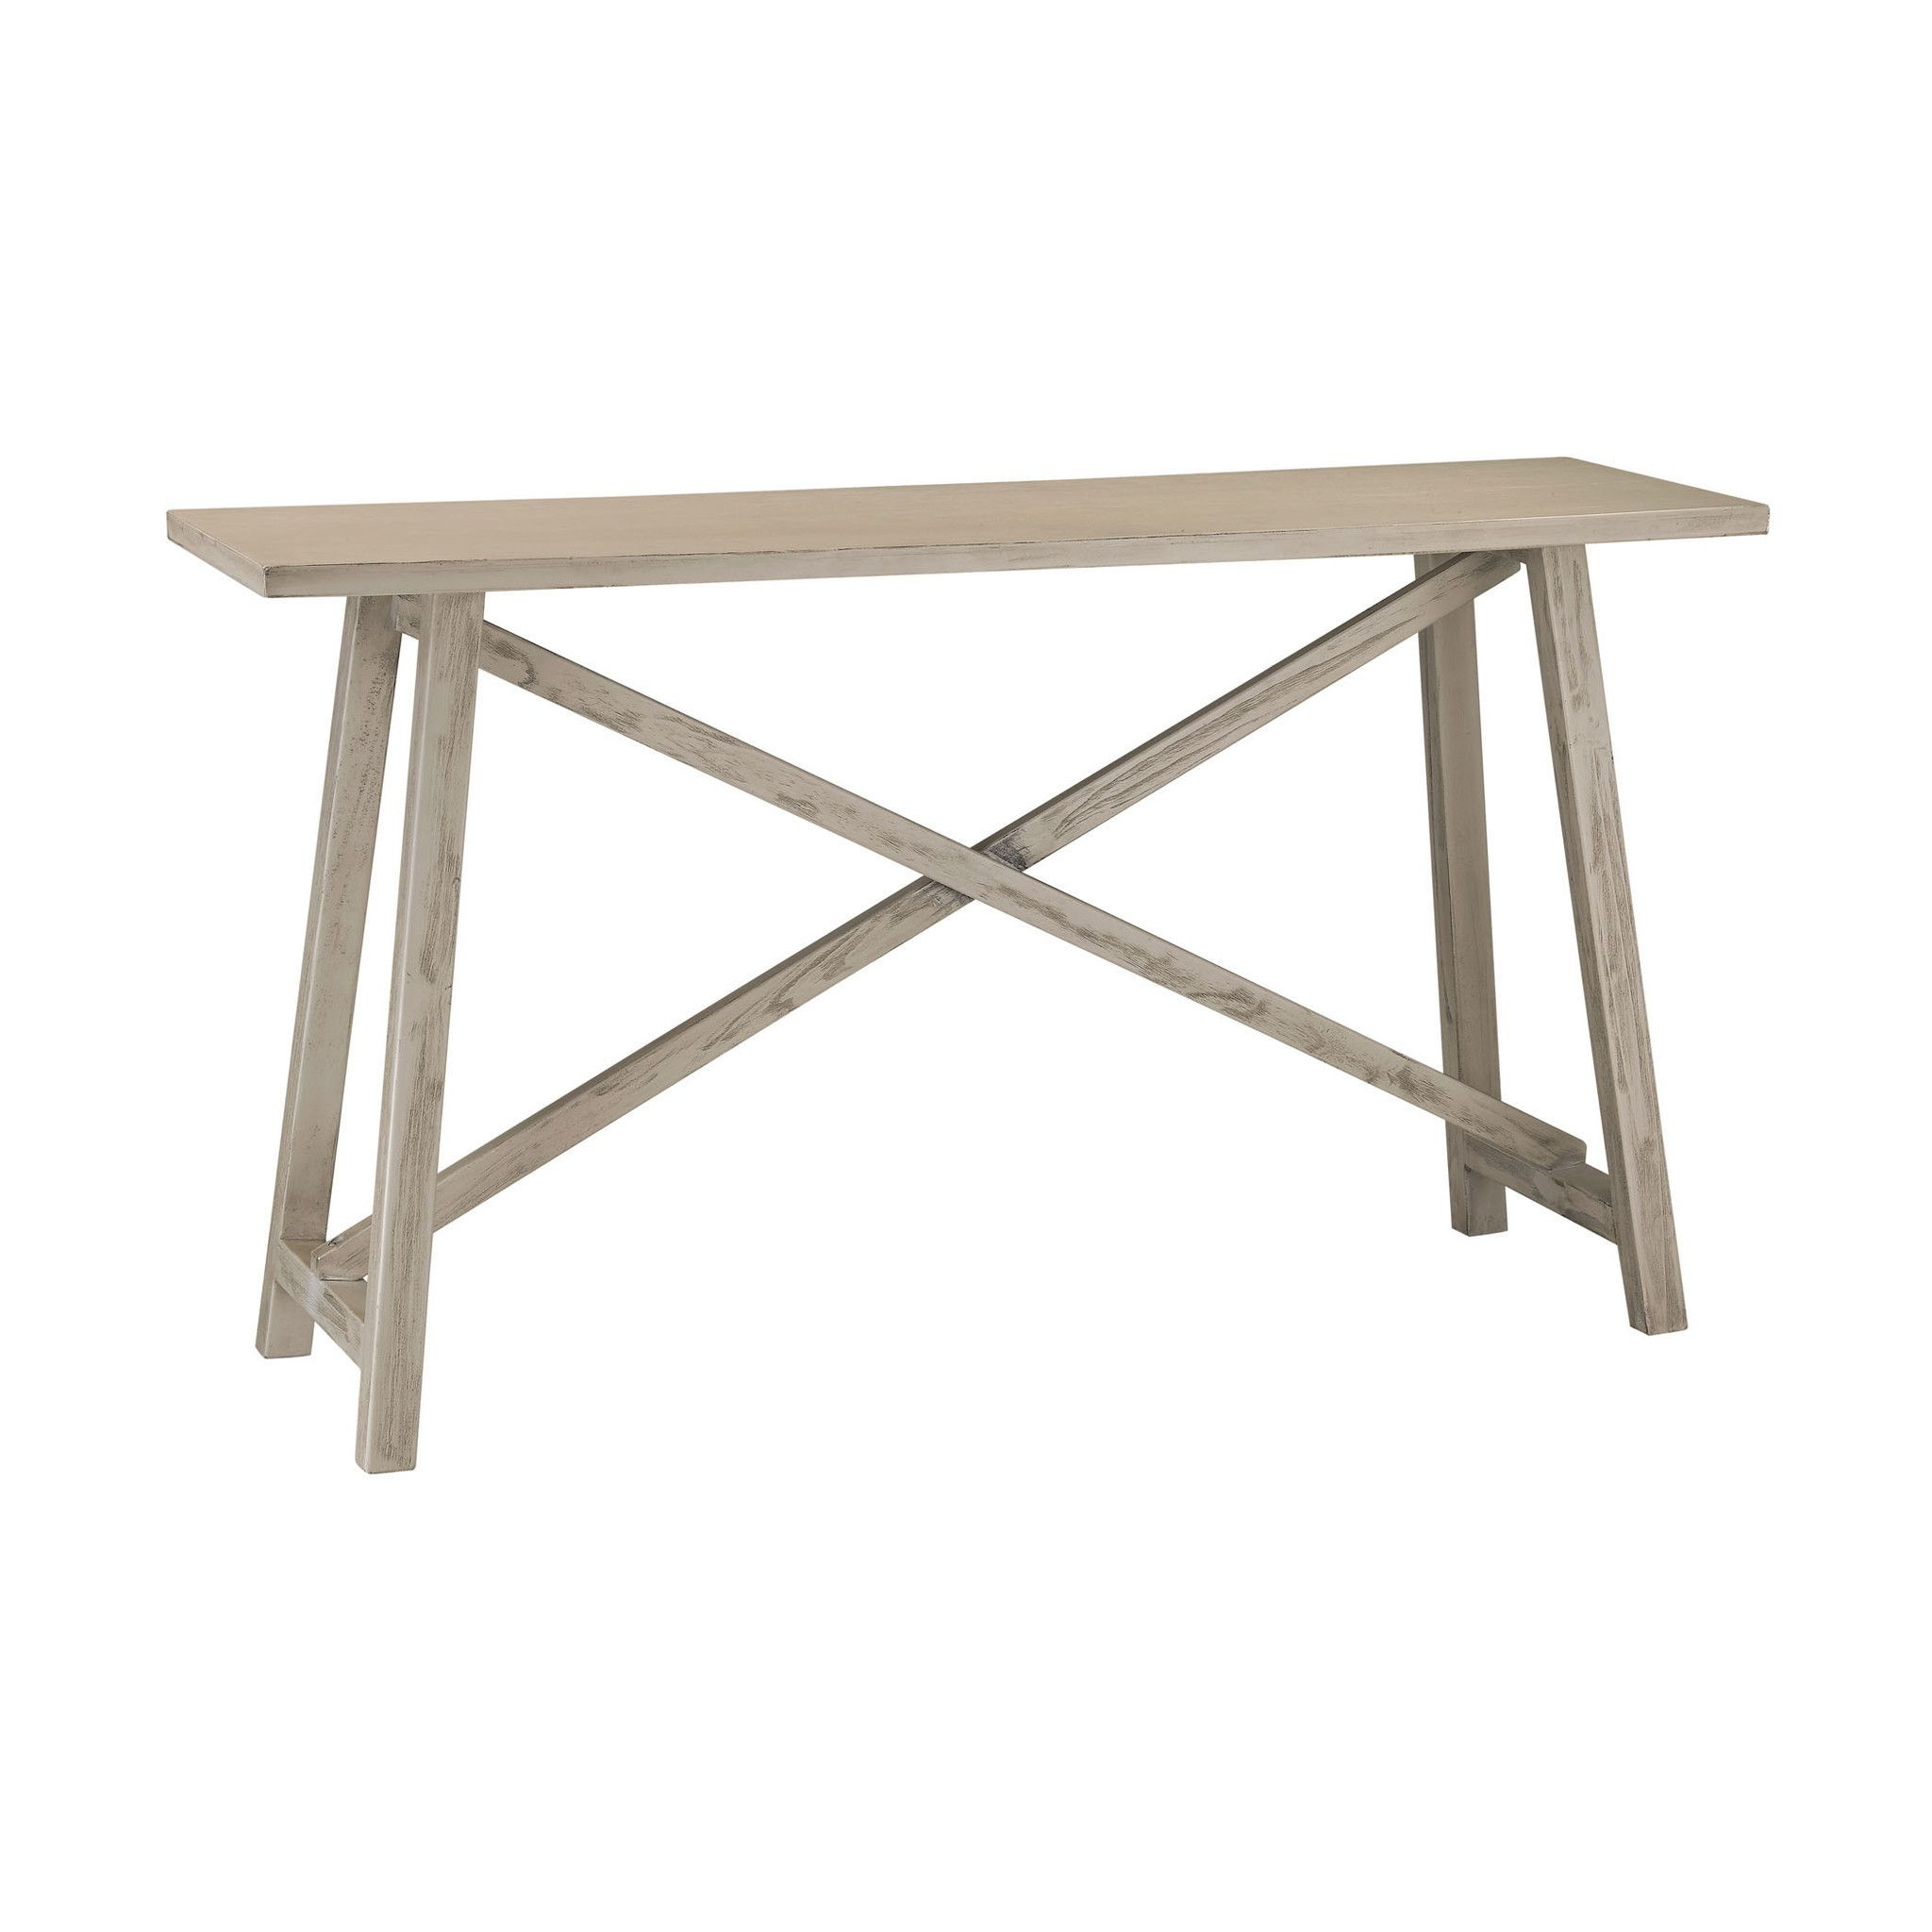 Sterling driftwood console table gray products sterling driftwood console table gray geotapseo Image collections